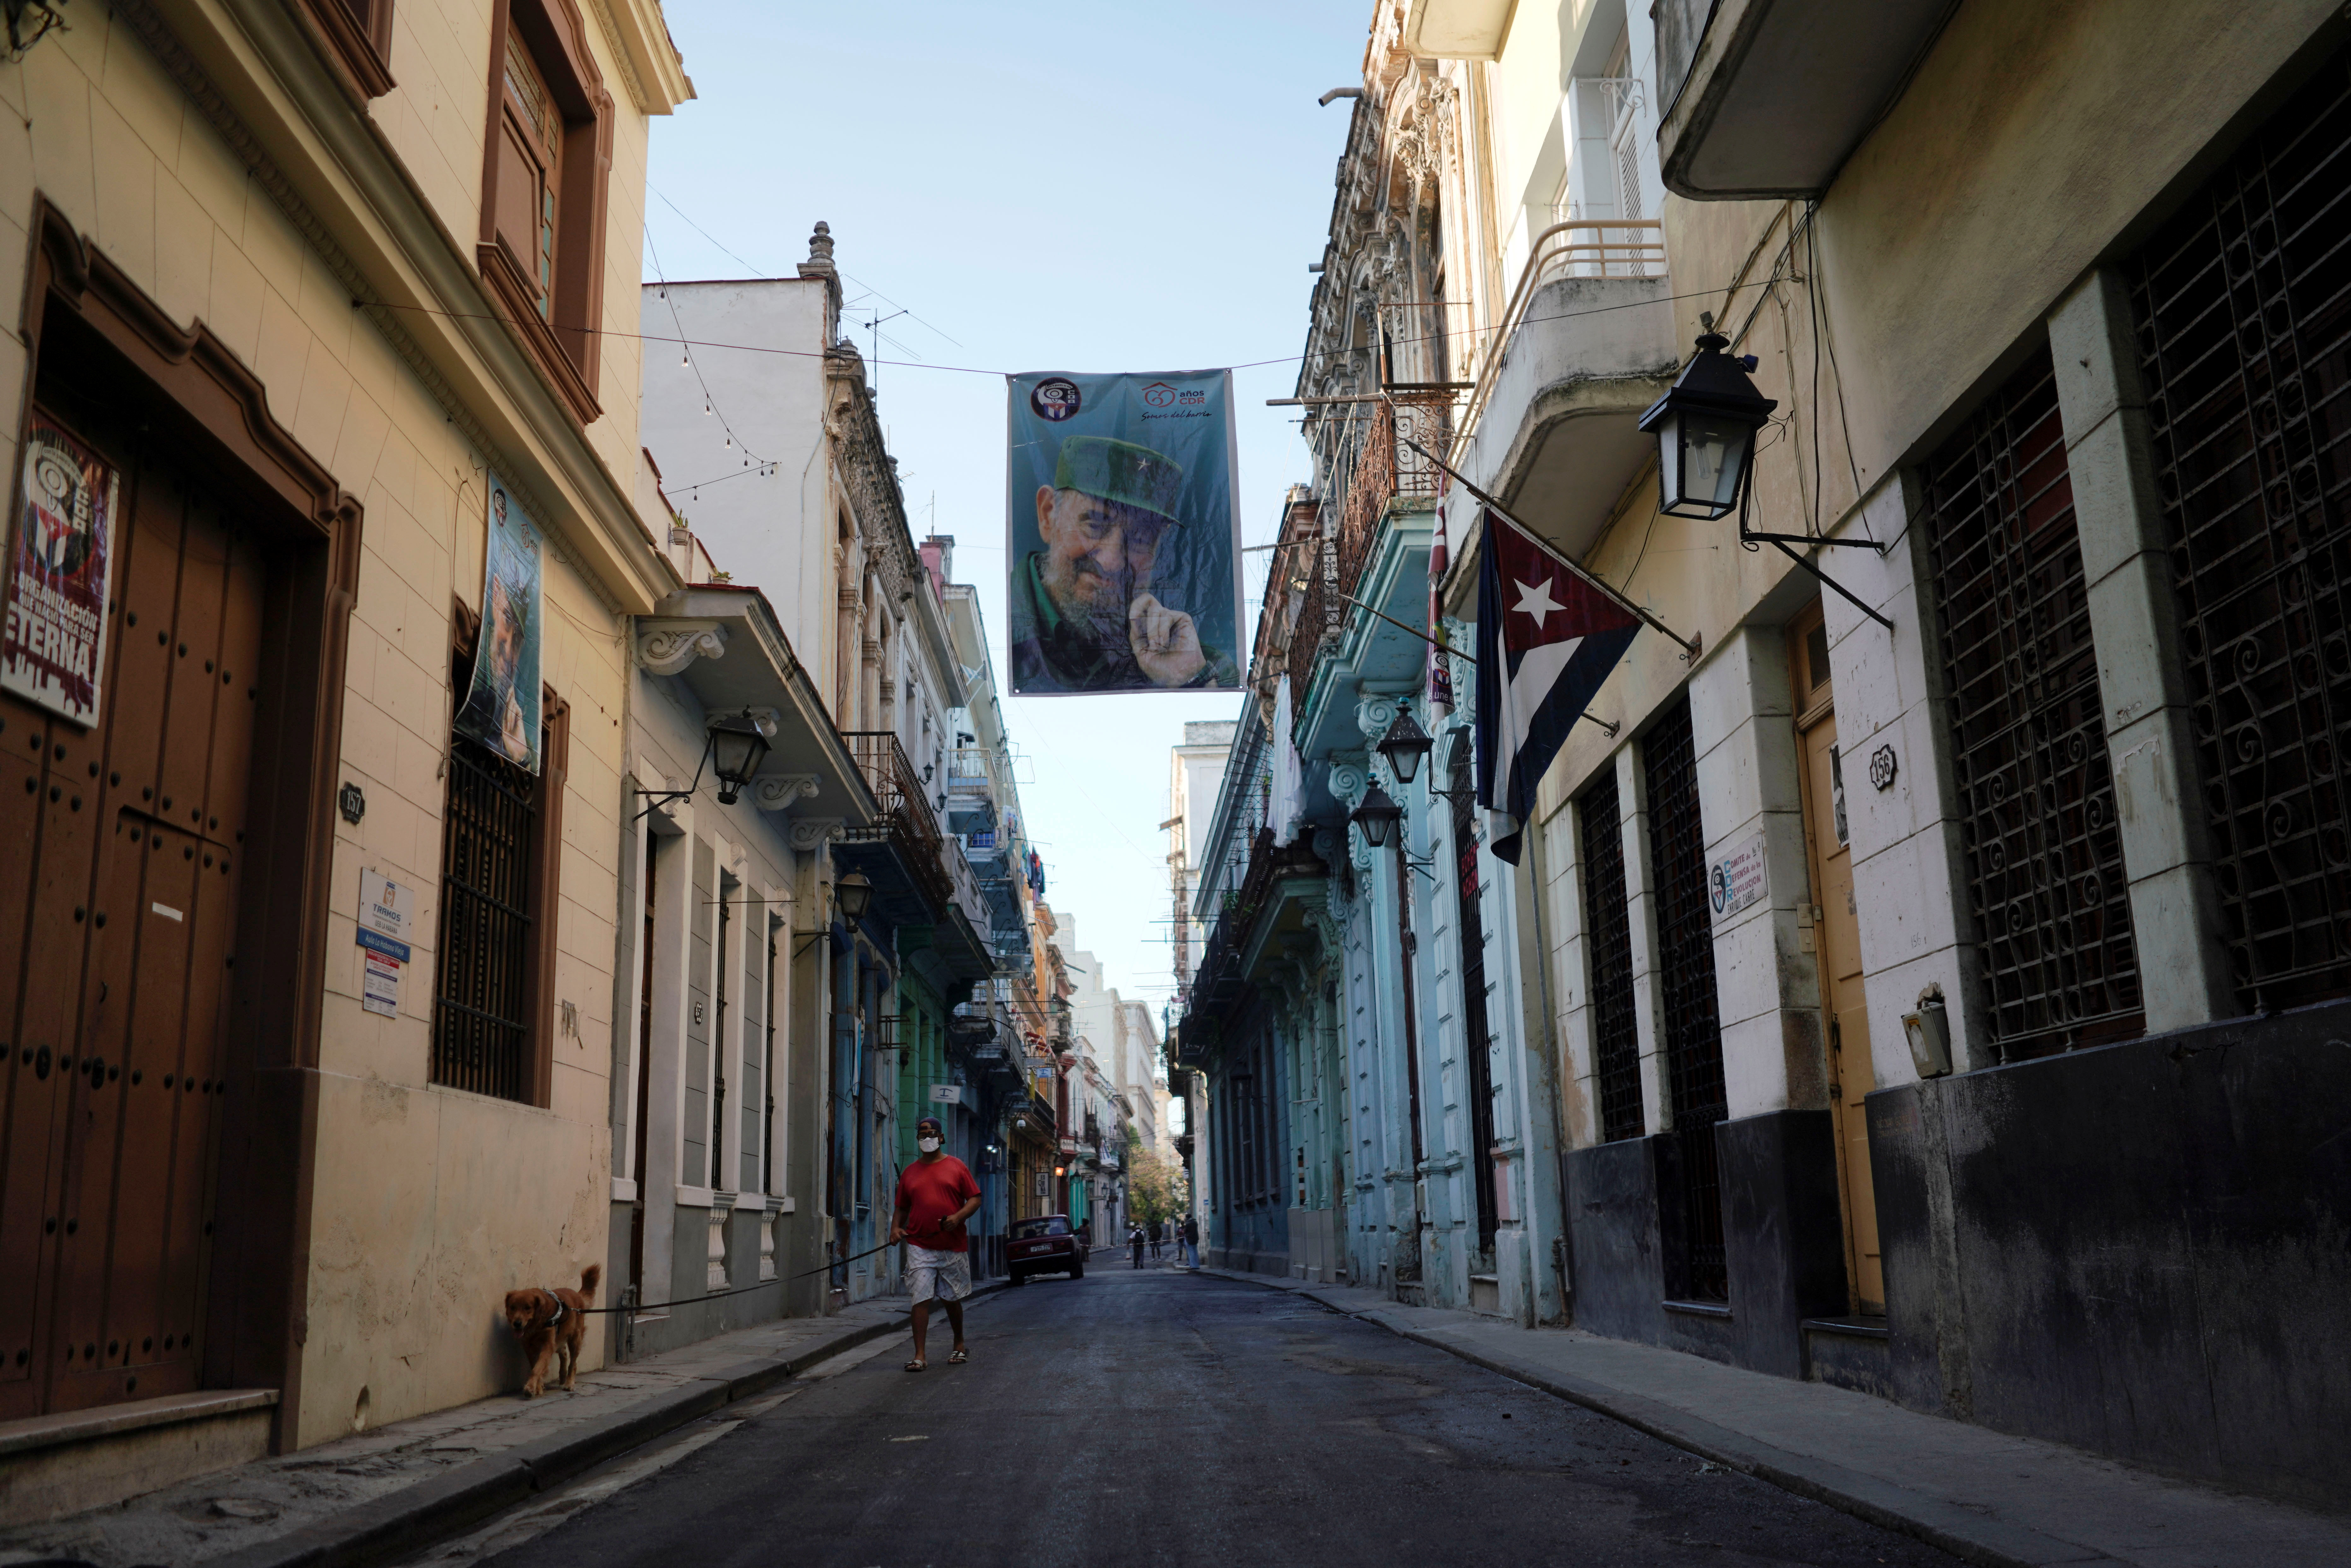 A banner displaying the portrait of late Cuban President Fidel Castro hangs on the street in downtown Havana, Cuba, May 1, 2021. REUTERS/Alexandre Meneghini